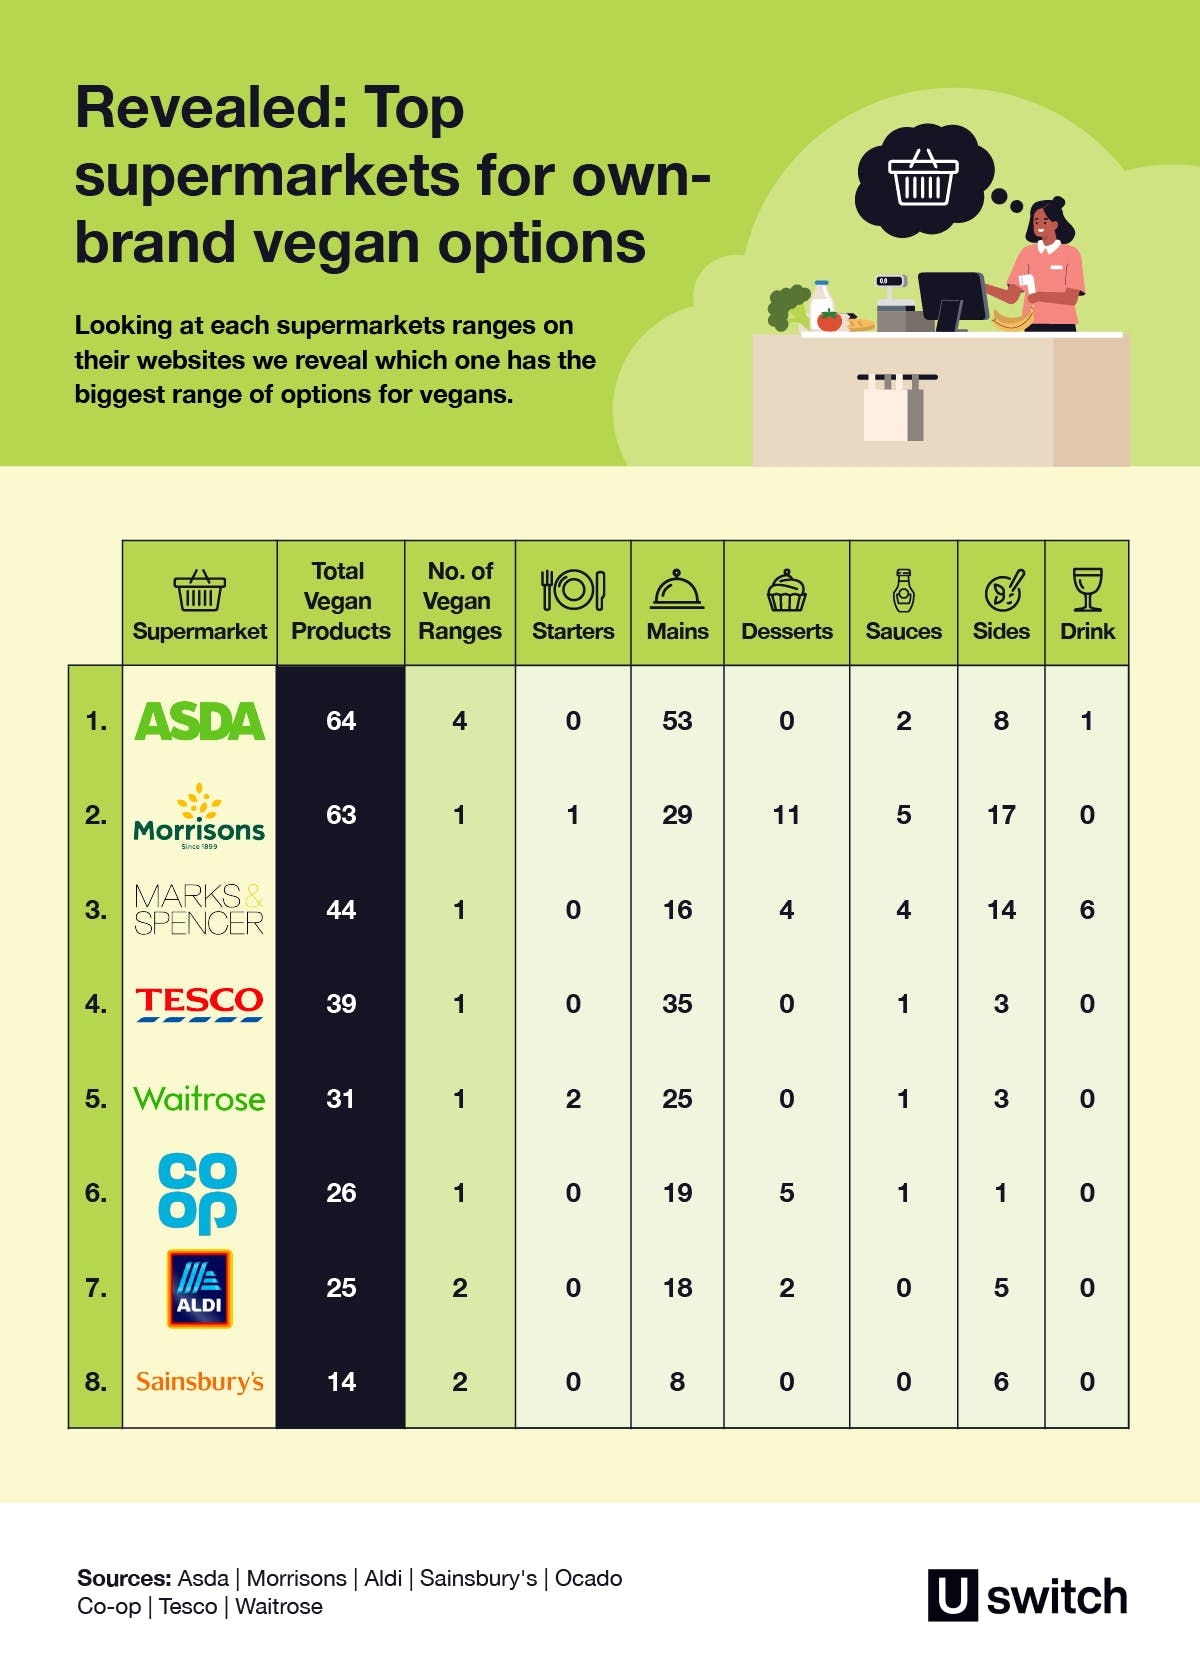 Revealed: Top supermarkets for own-brand vegan options table.